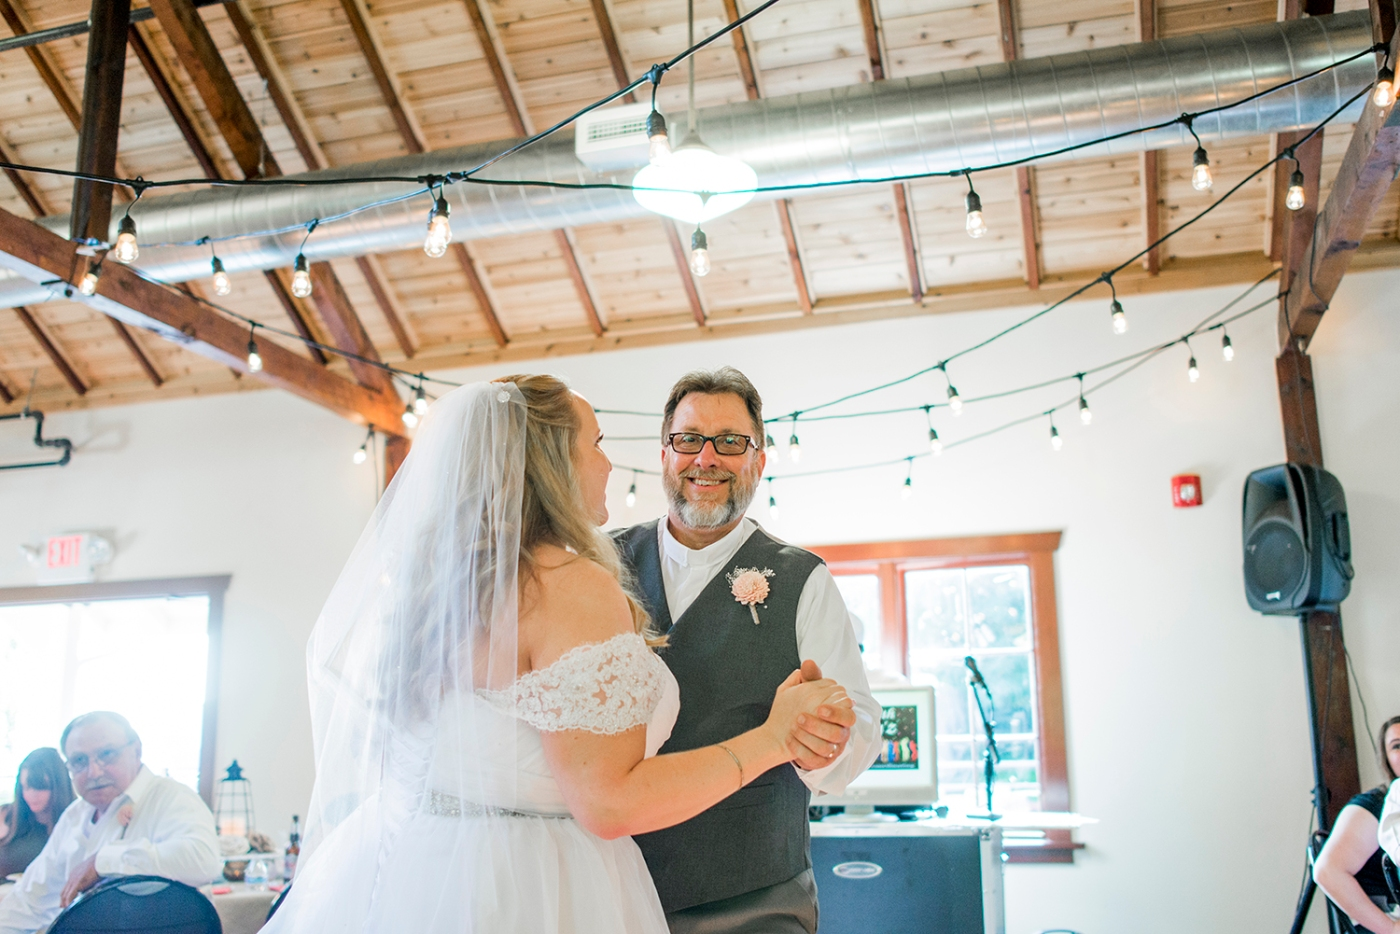 Jane_Speleers_Seattle_photography_Katie_and_Steve_2016_Des_Moines_Marina_Wedding_DSC_2034